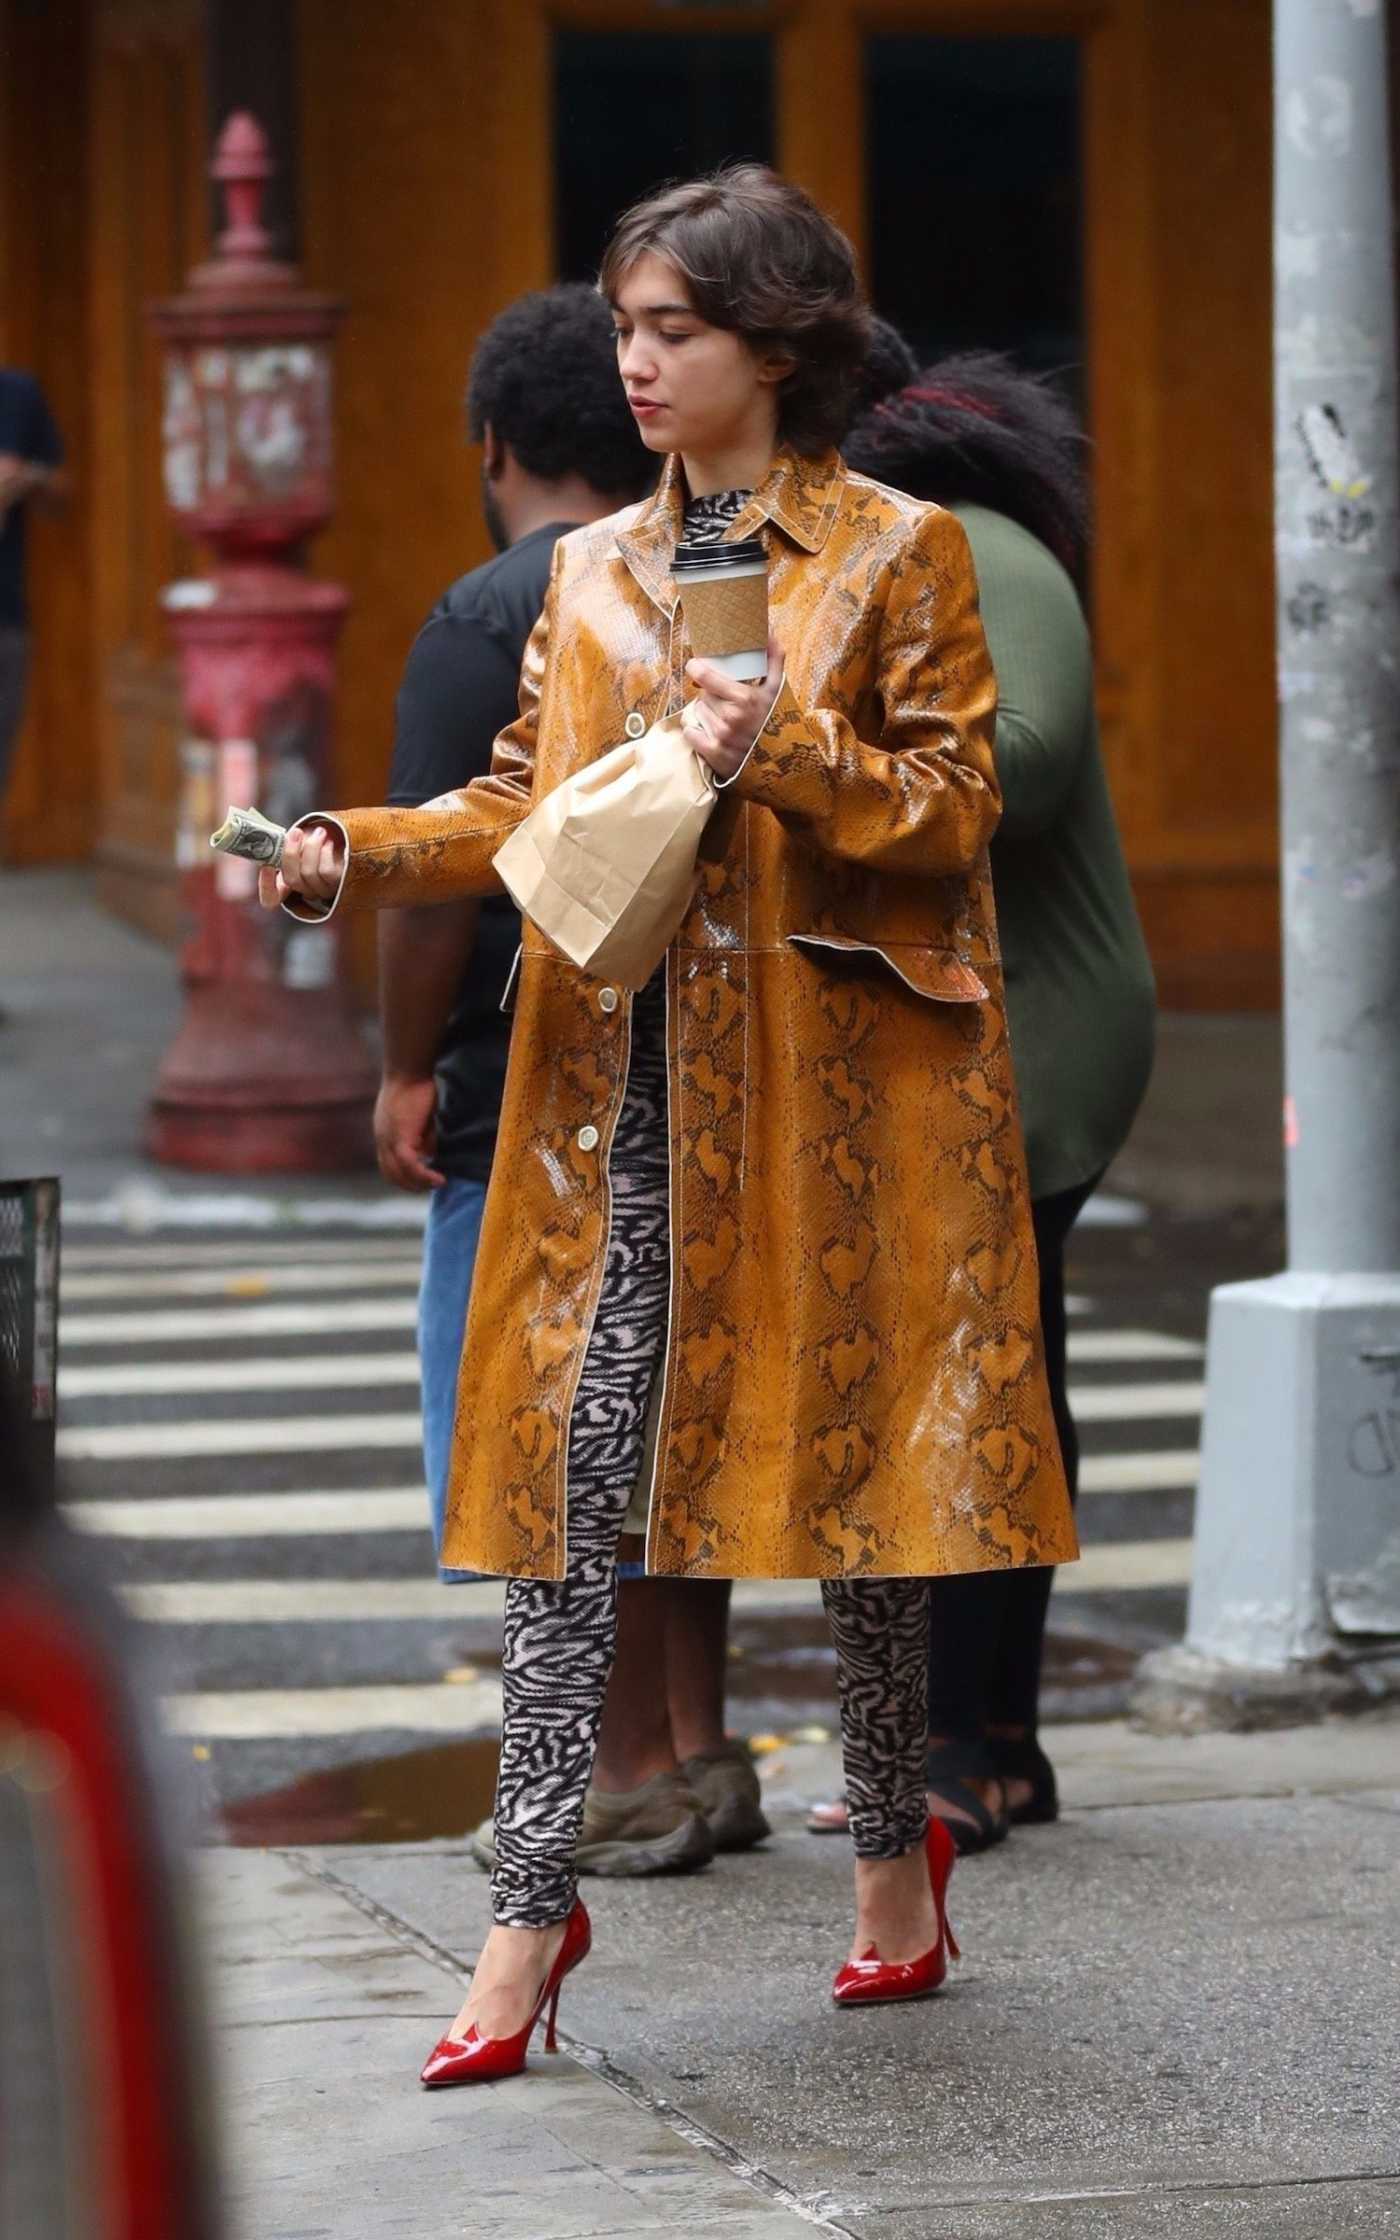 Rowan Blanchard in a Beige Snakeskin Trench Coat Was Seen Out in New York City 09/07/2019